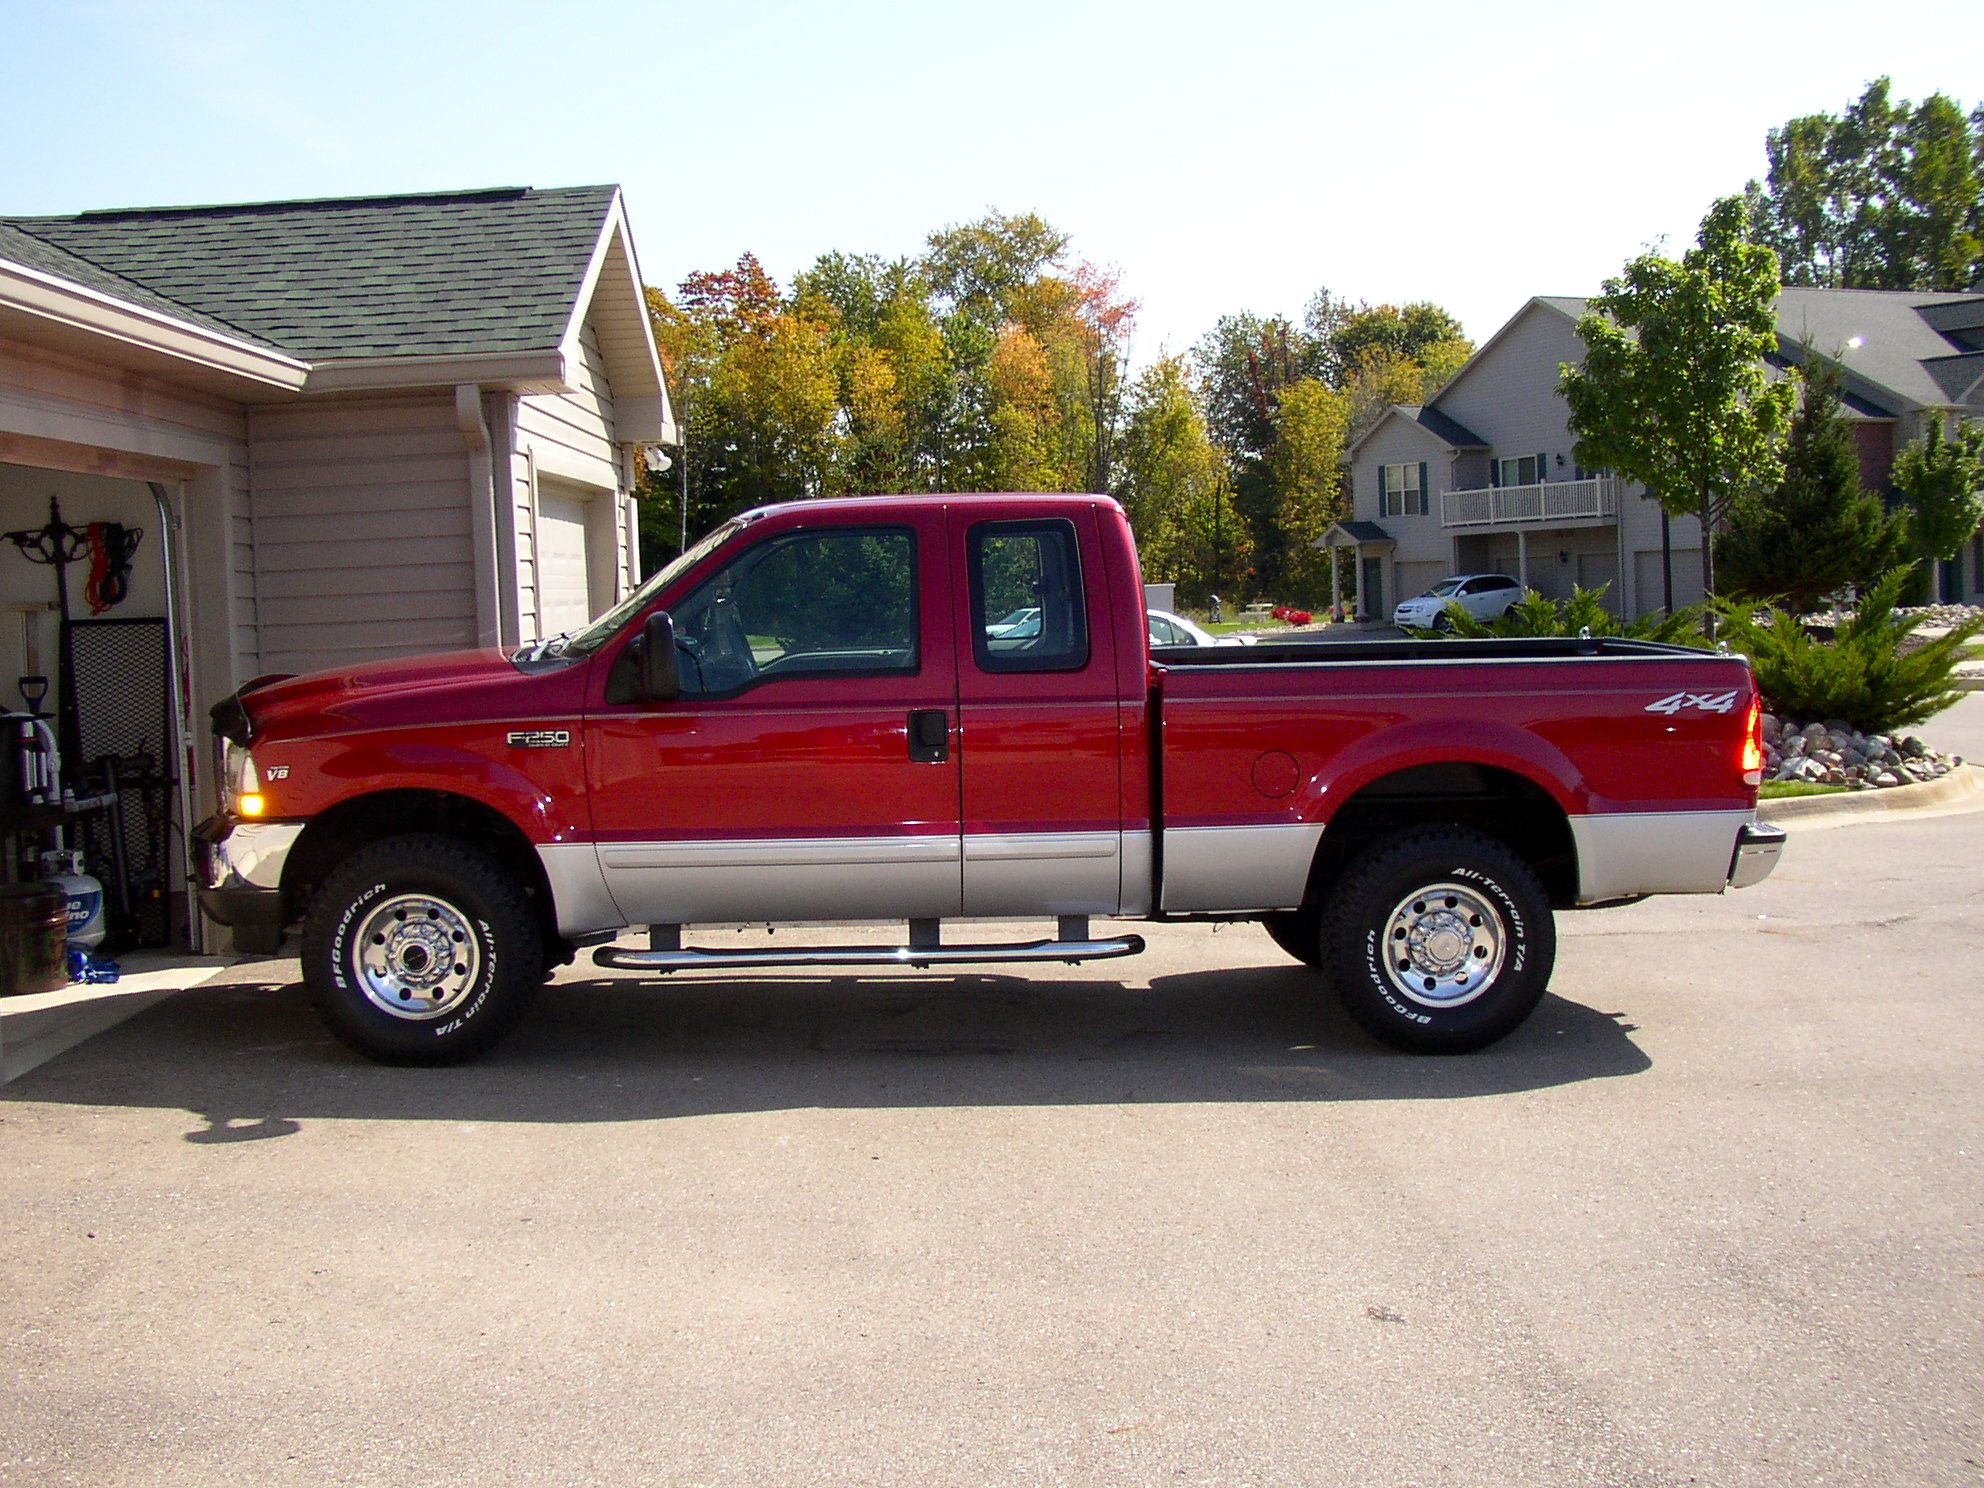 9 2002 f250 super duty 4x4 4 door crew deep red wine not two toned v 10 solid bought new at ford dealership on mercury near cunningham  [ 1984 x 1488 Pixel ]